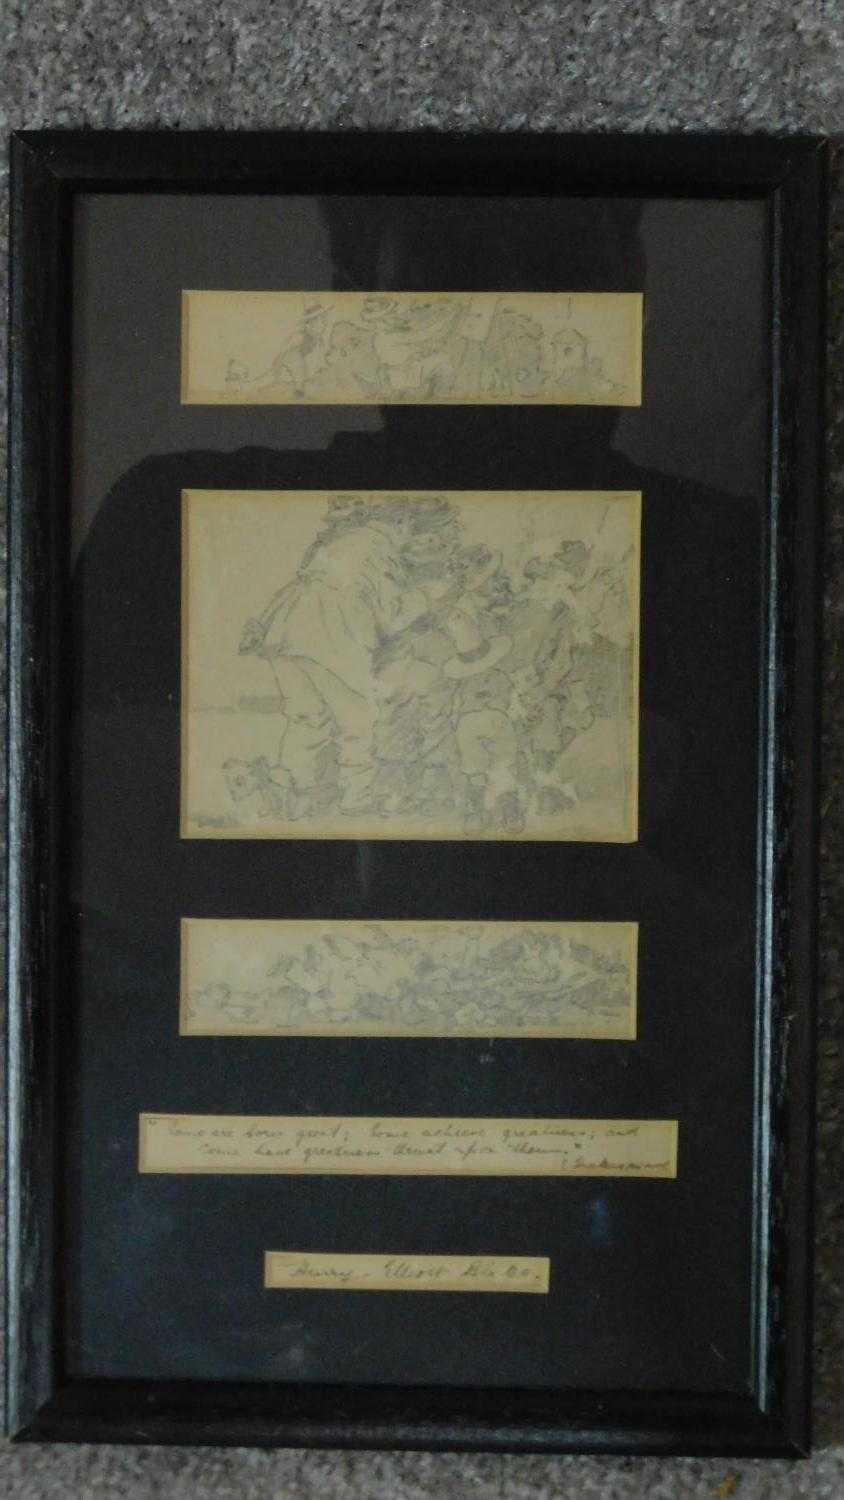 Three pencil sketches framed as one, signed, Henry Elliot Blake. 30x19cm